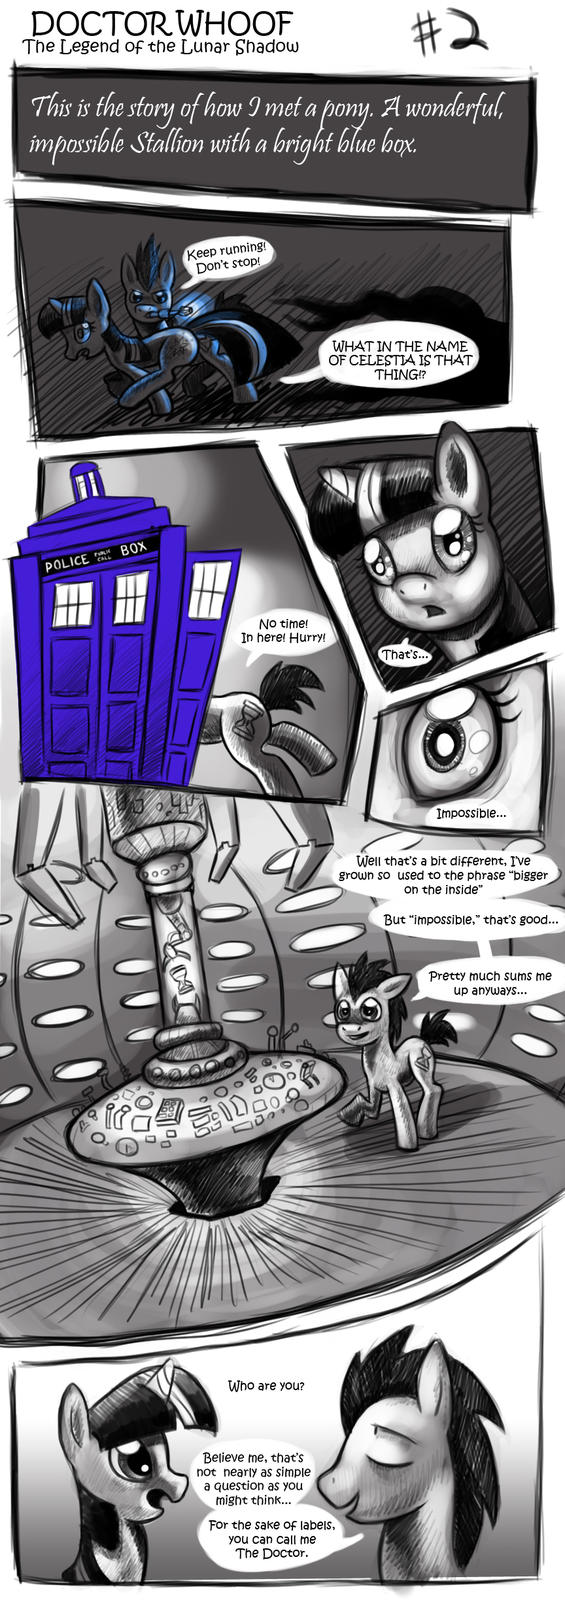 doctor_whoof__lunar_shadow_2_by_cybertoaster-d489341.jpg